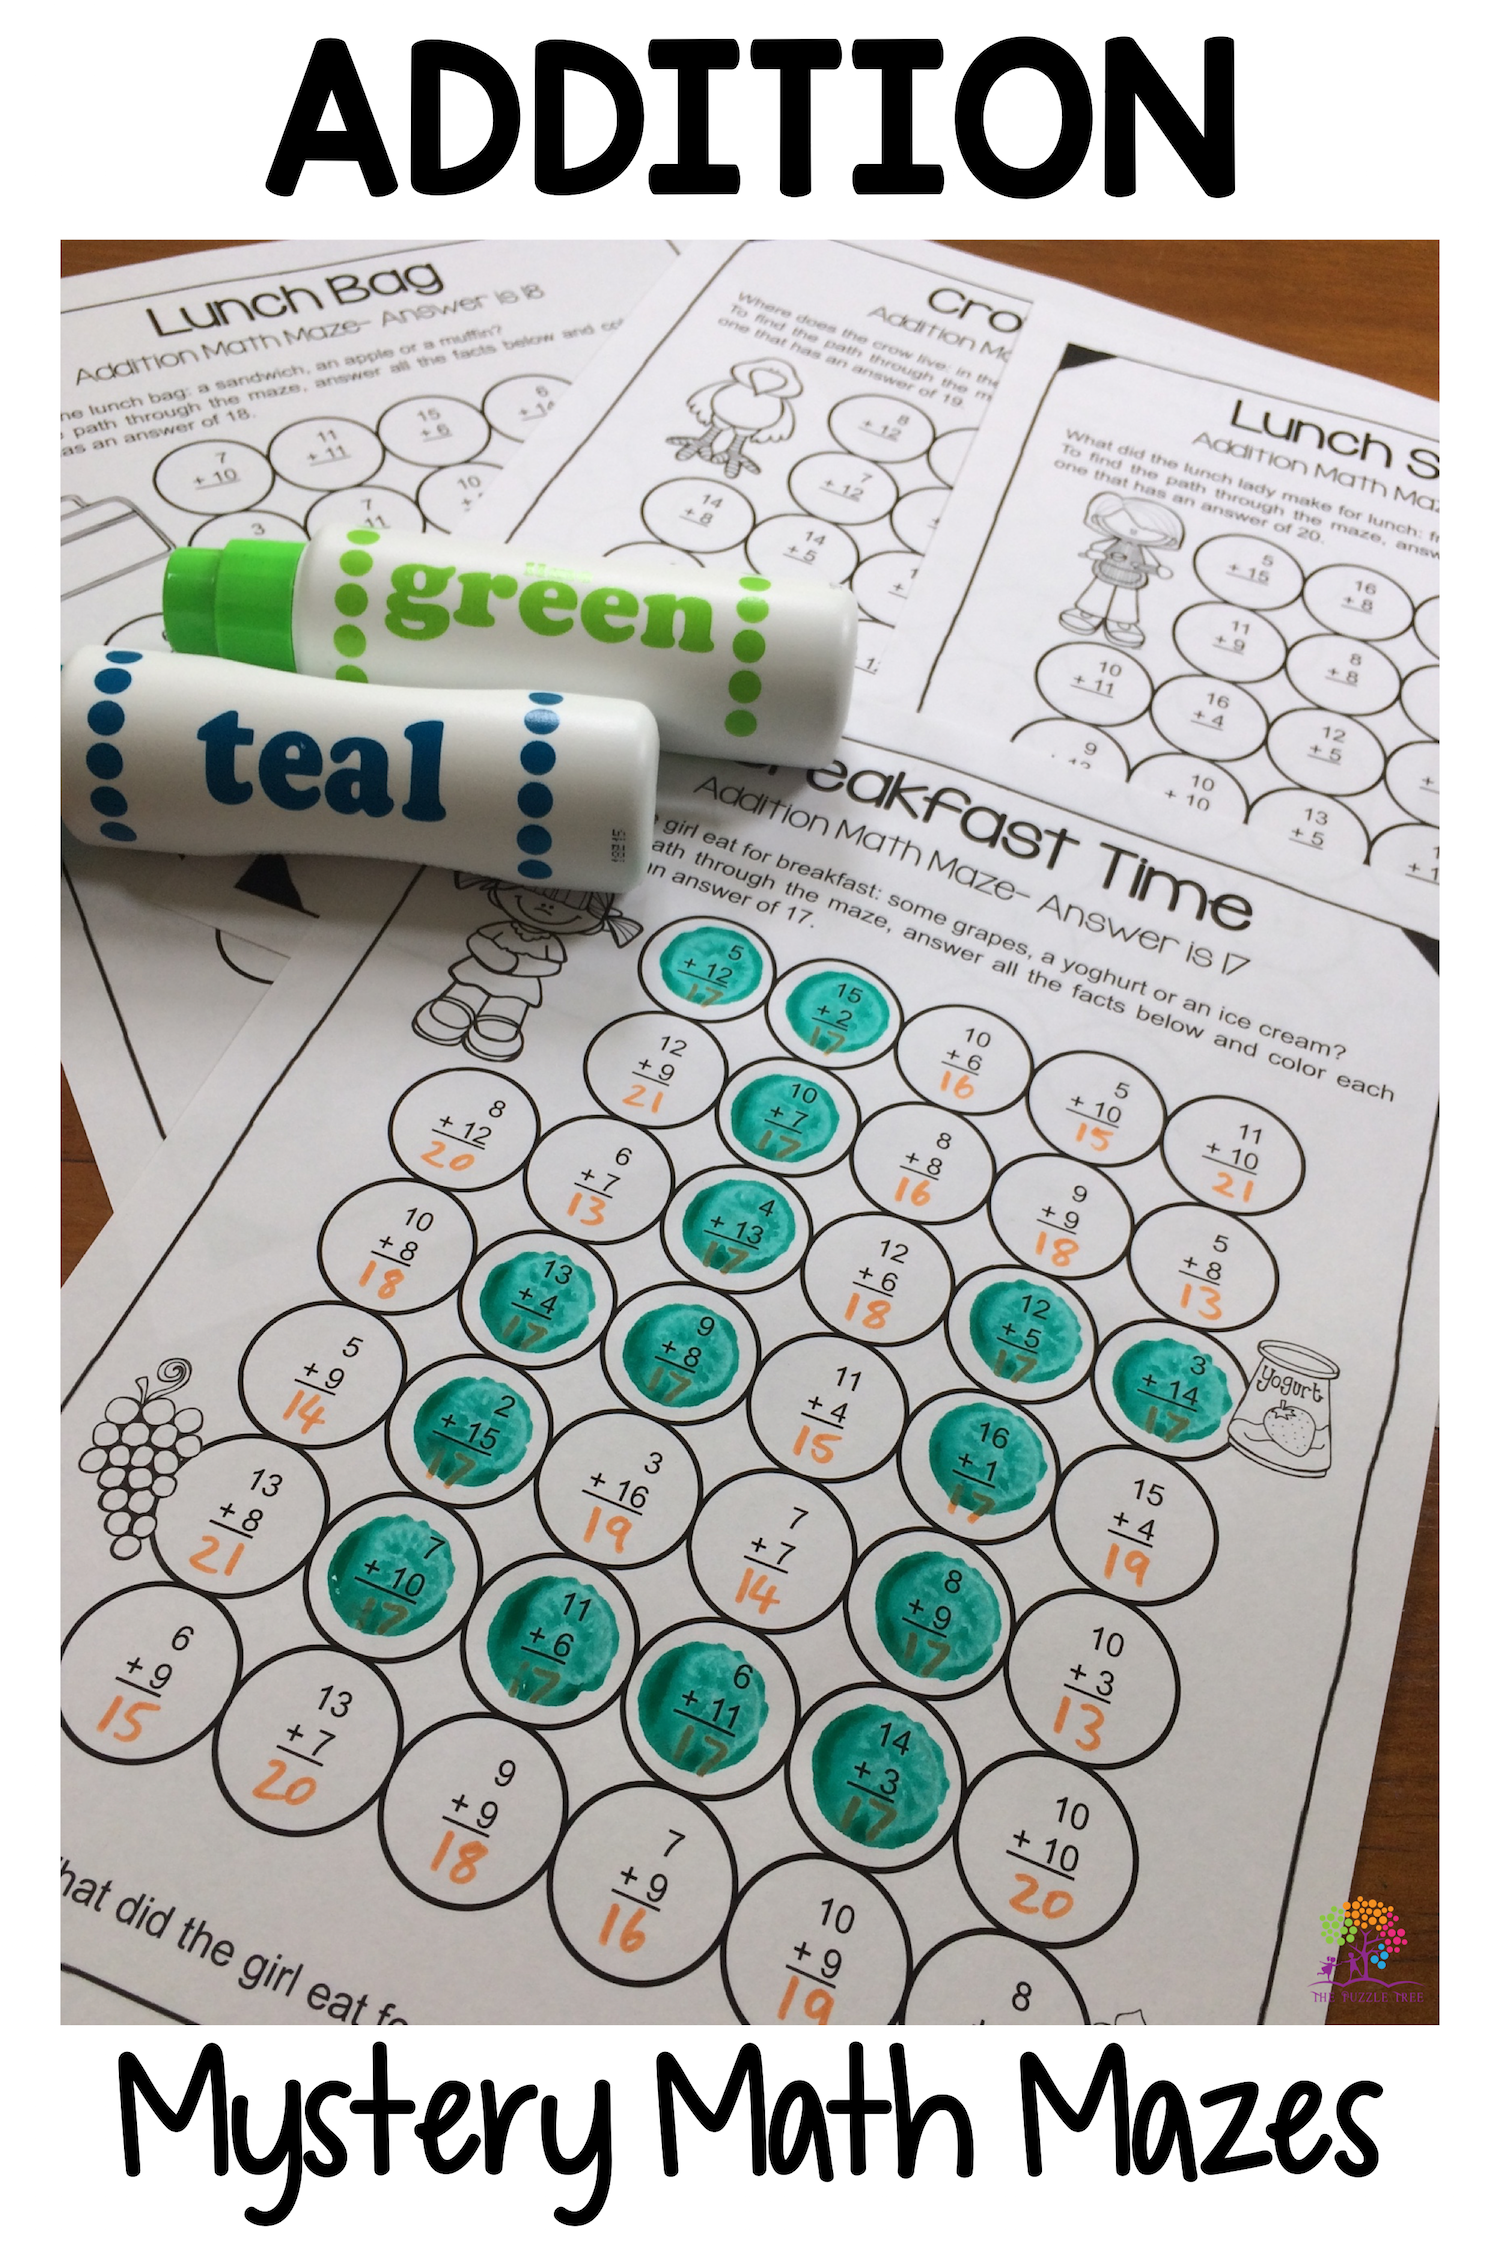 Addition Worksheets Math Mazes For Addition Fact Practice